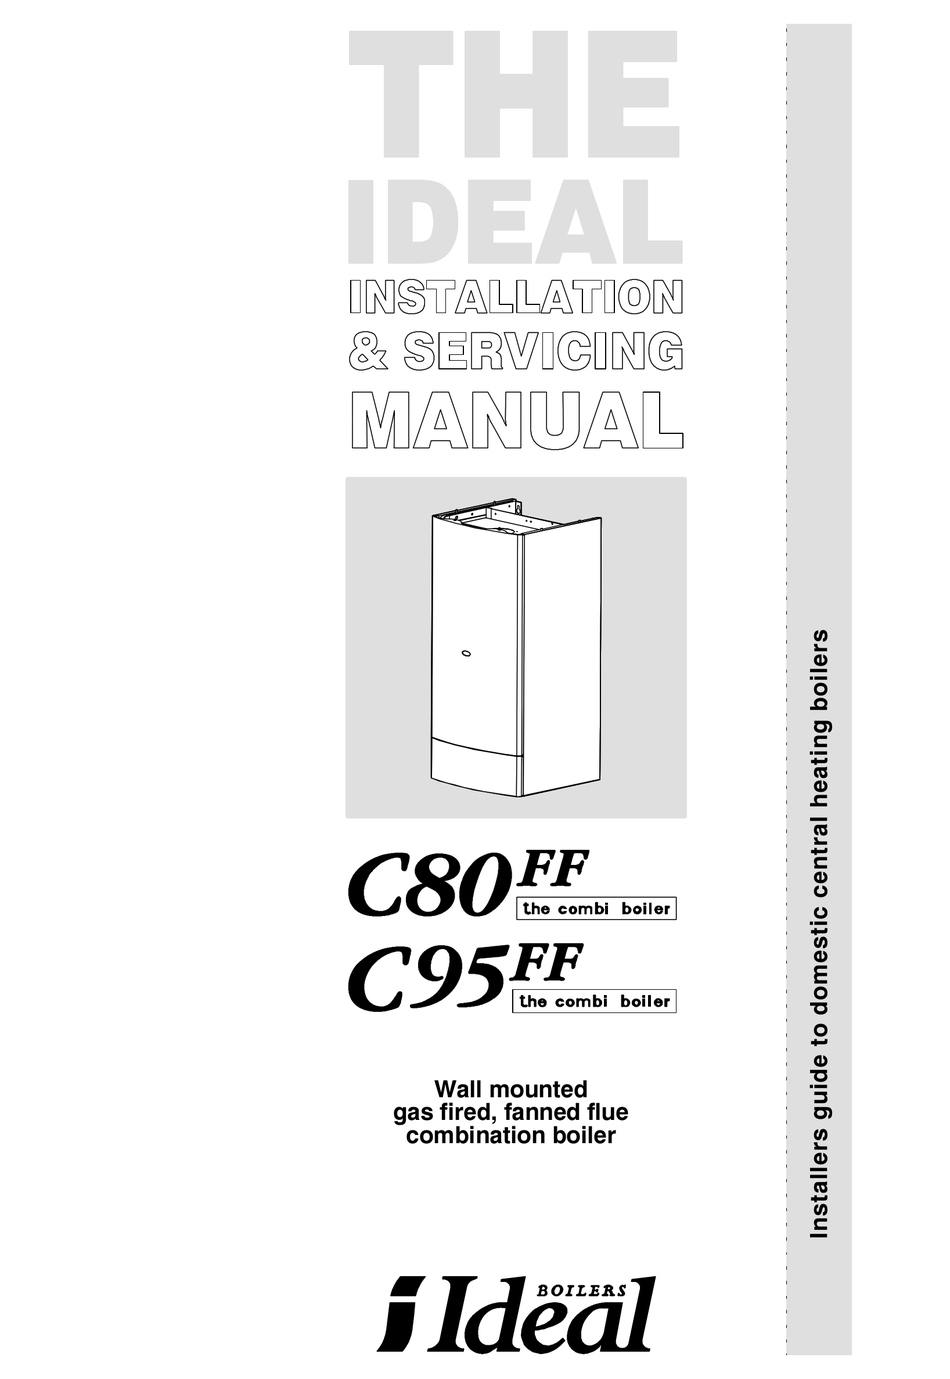 IDEAL BOILERS C80FF INSTALLATION & SERVICING MANUAL Pdf